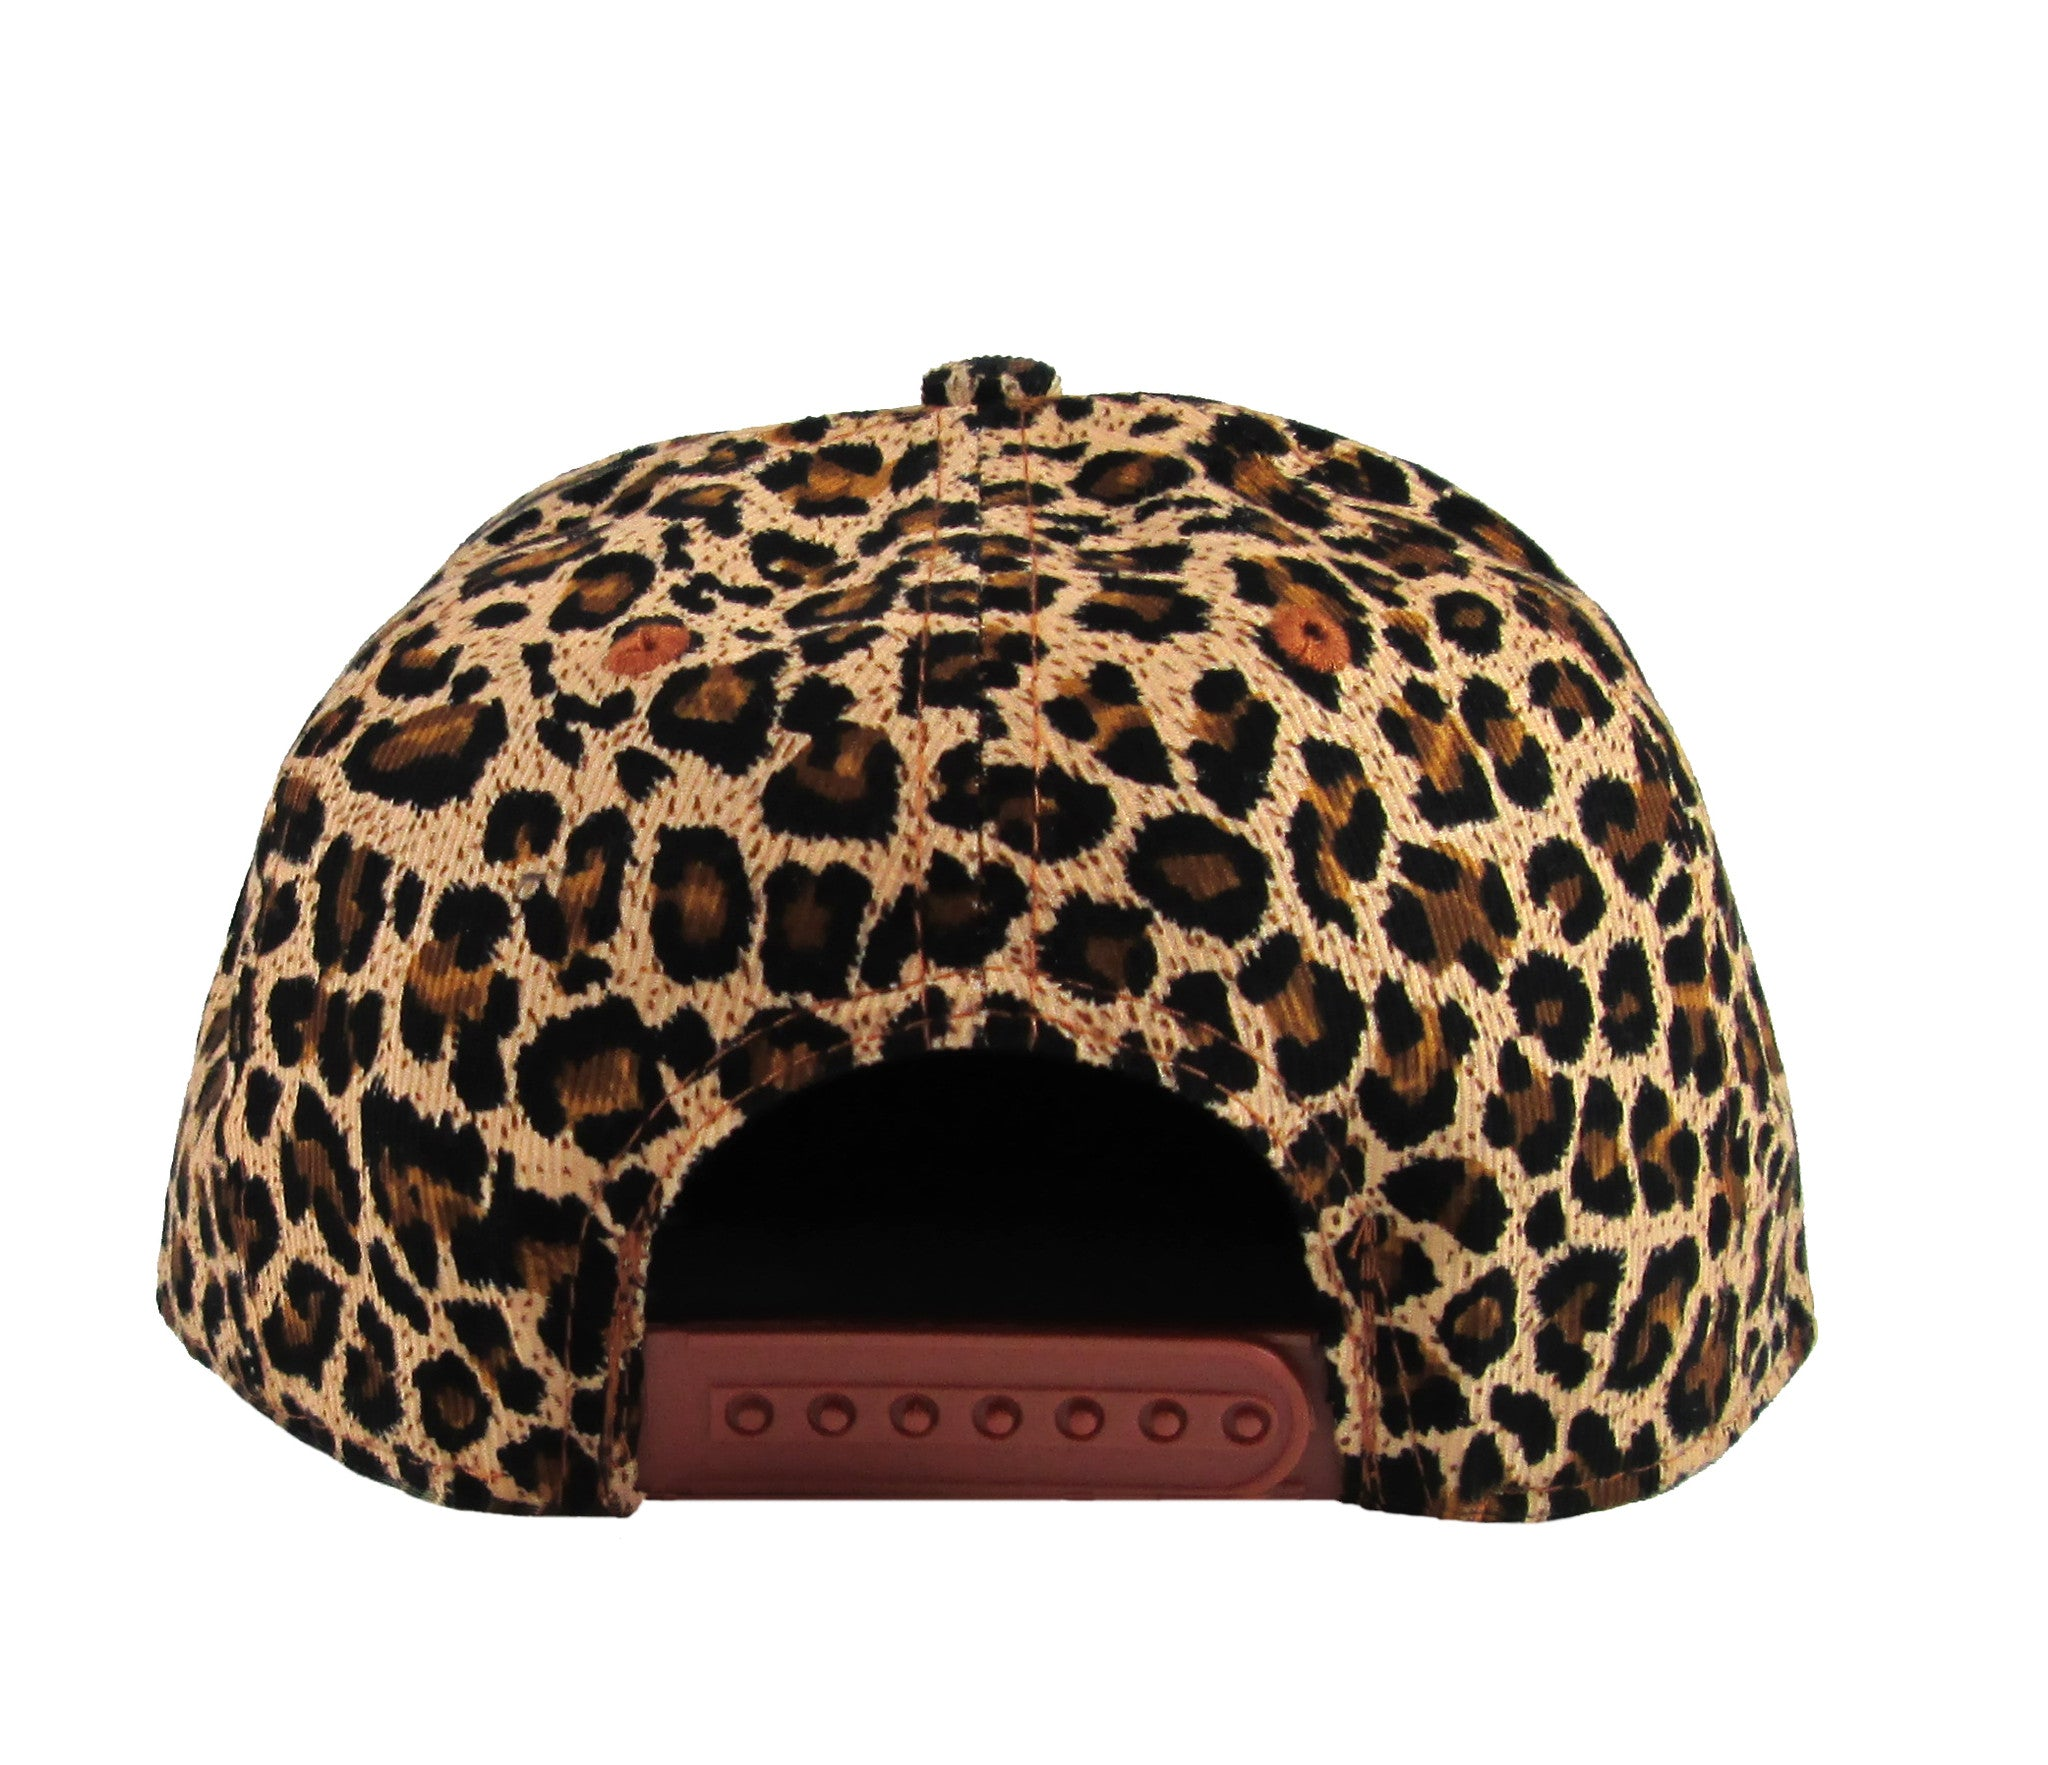 Alex & Chloe Leopard Snap Back Back View